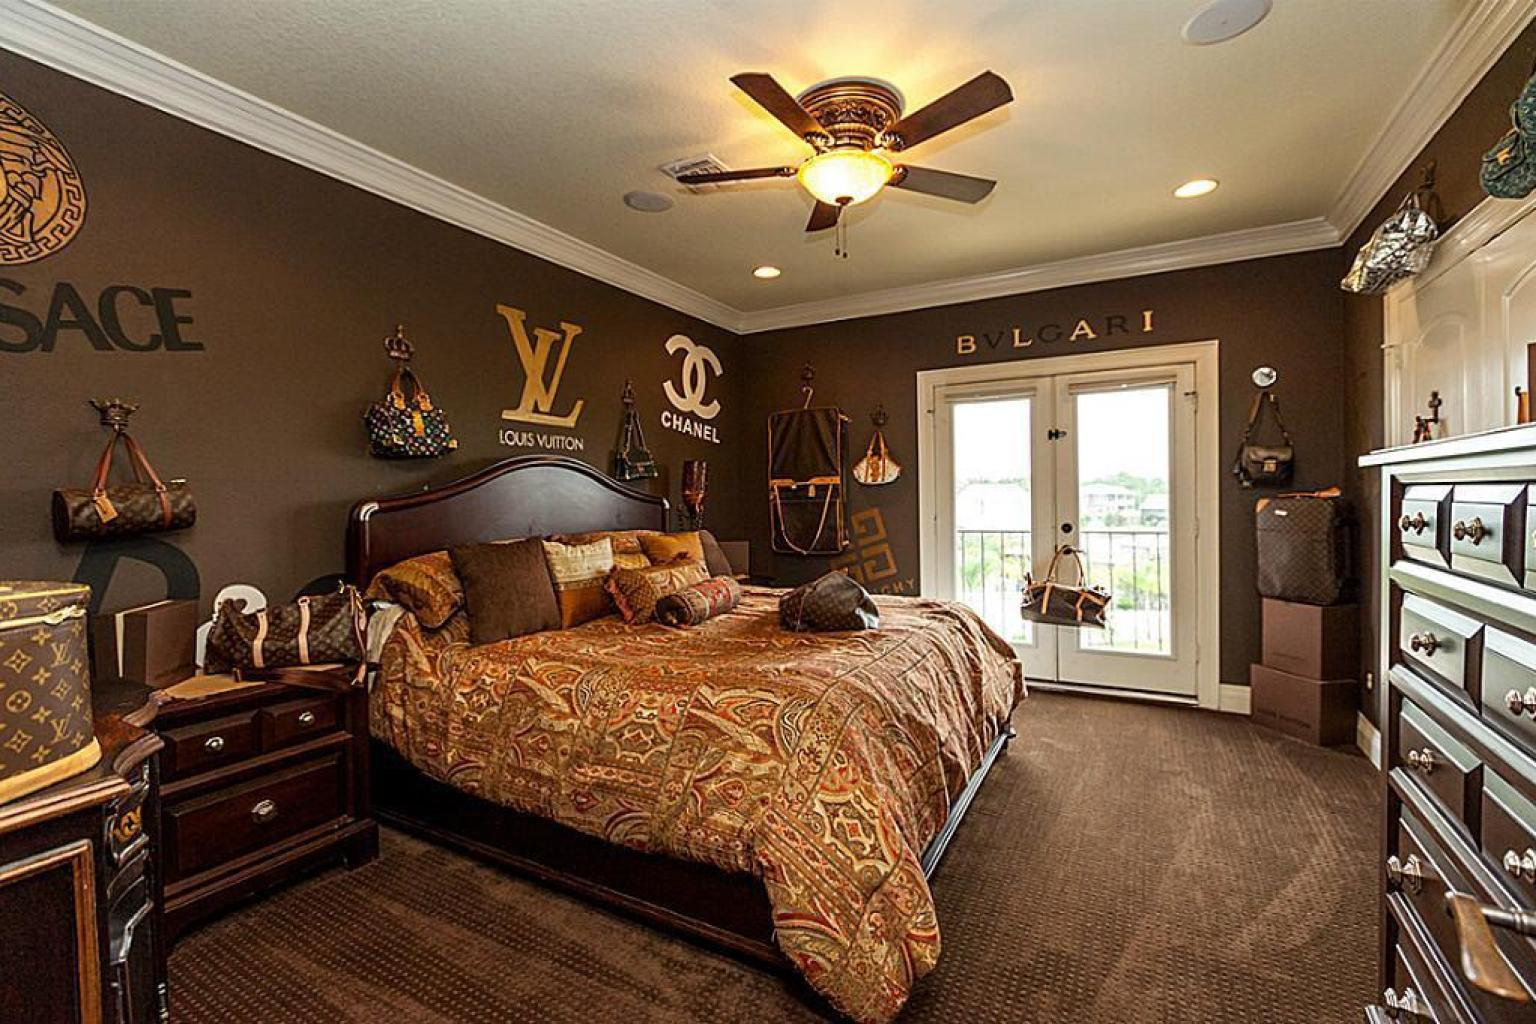 Louis vuitton bedroom in texas home for sale takes fashion for Texas decorations for the home